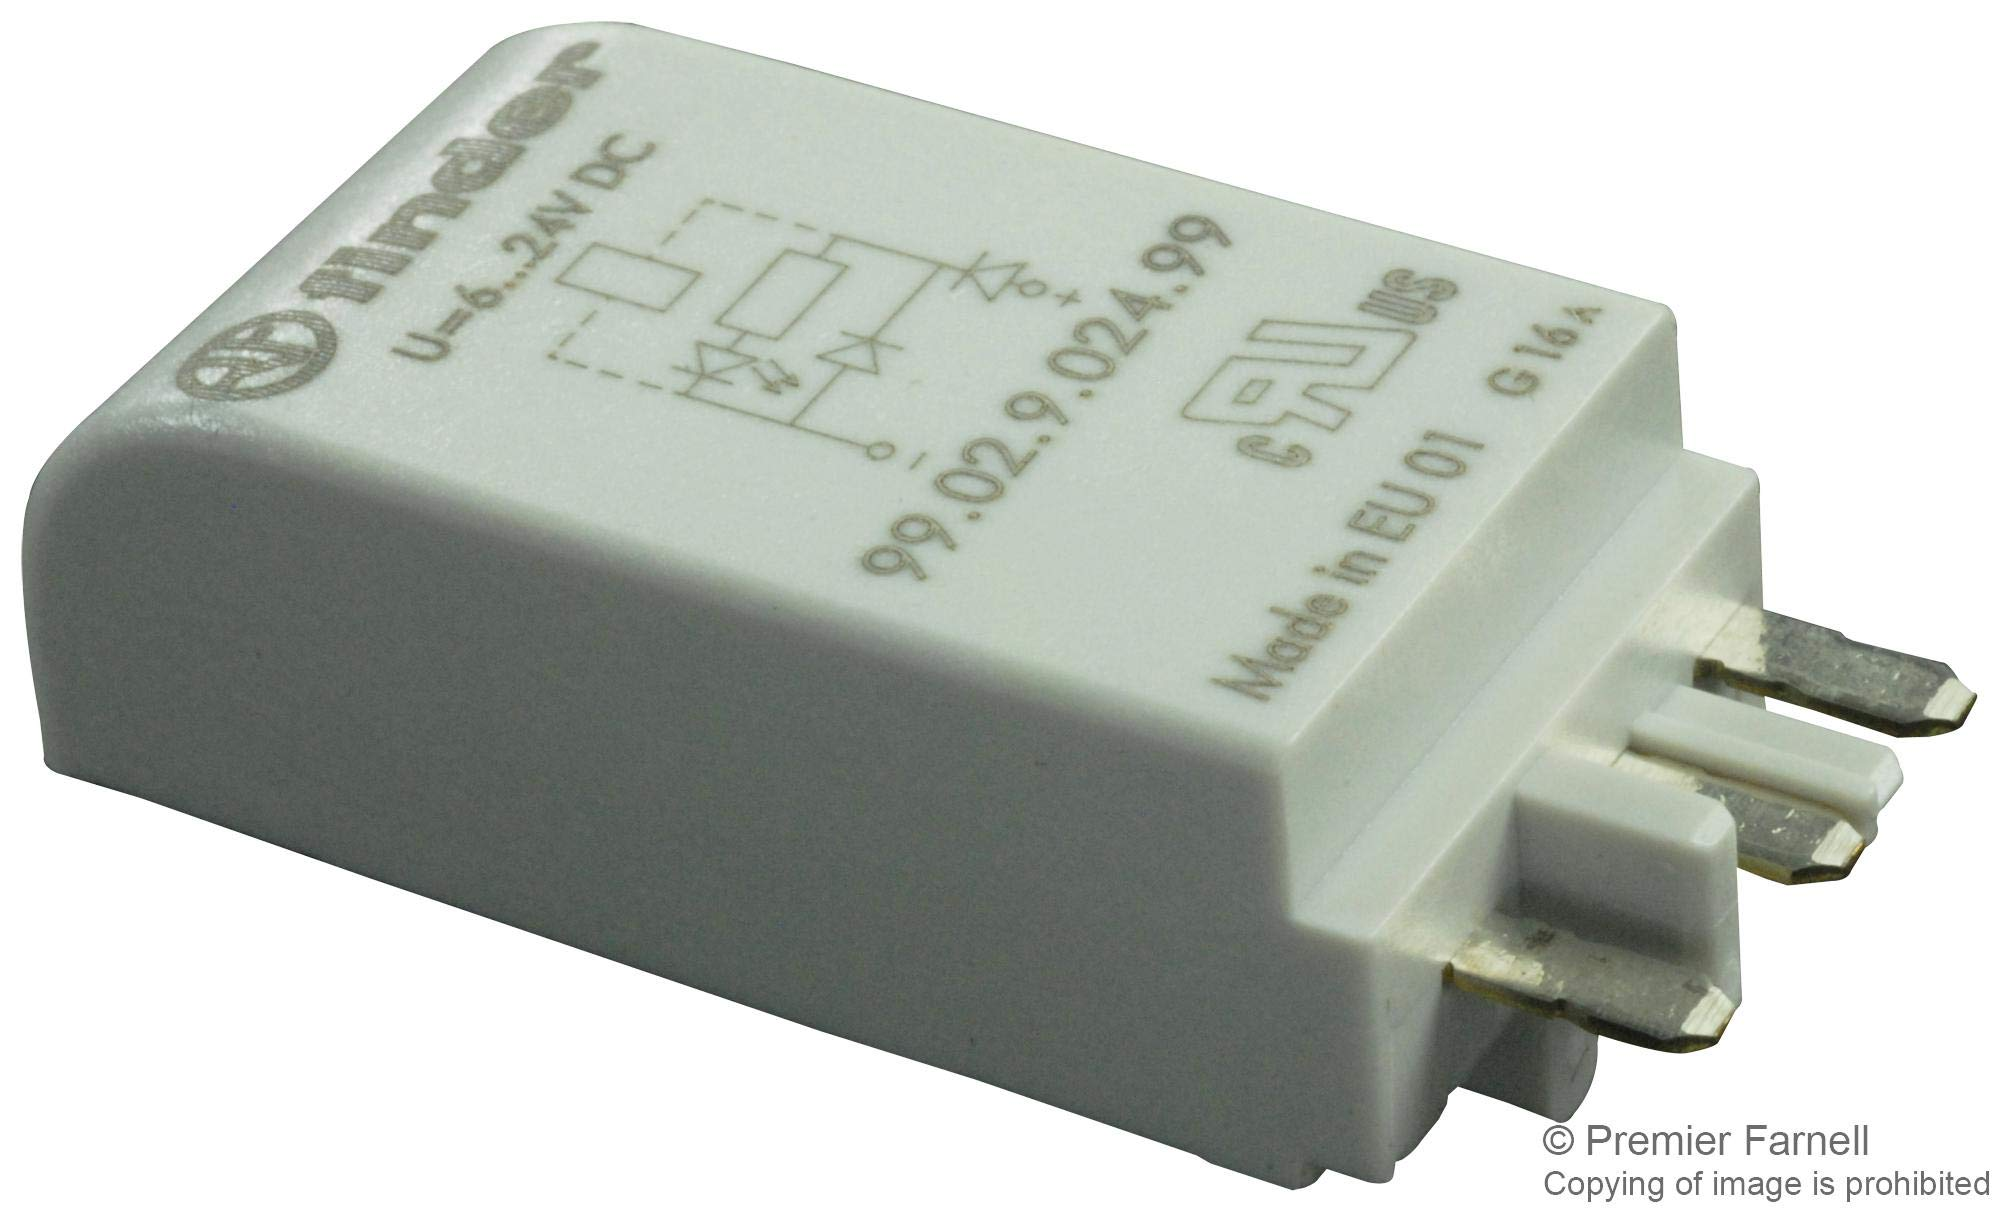 99.02.9.024.99 - Relay Accessory, Coil Indication and EMC Suppression Modules, Finder 95.83 / 85 Series Relays (Pack of 10) (99.02.9.024.99)